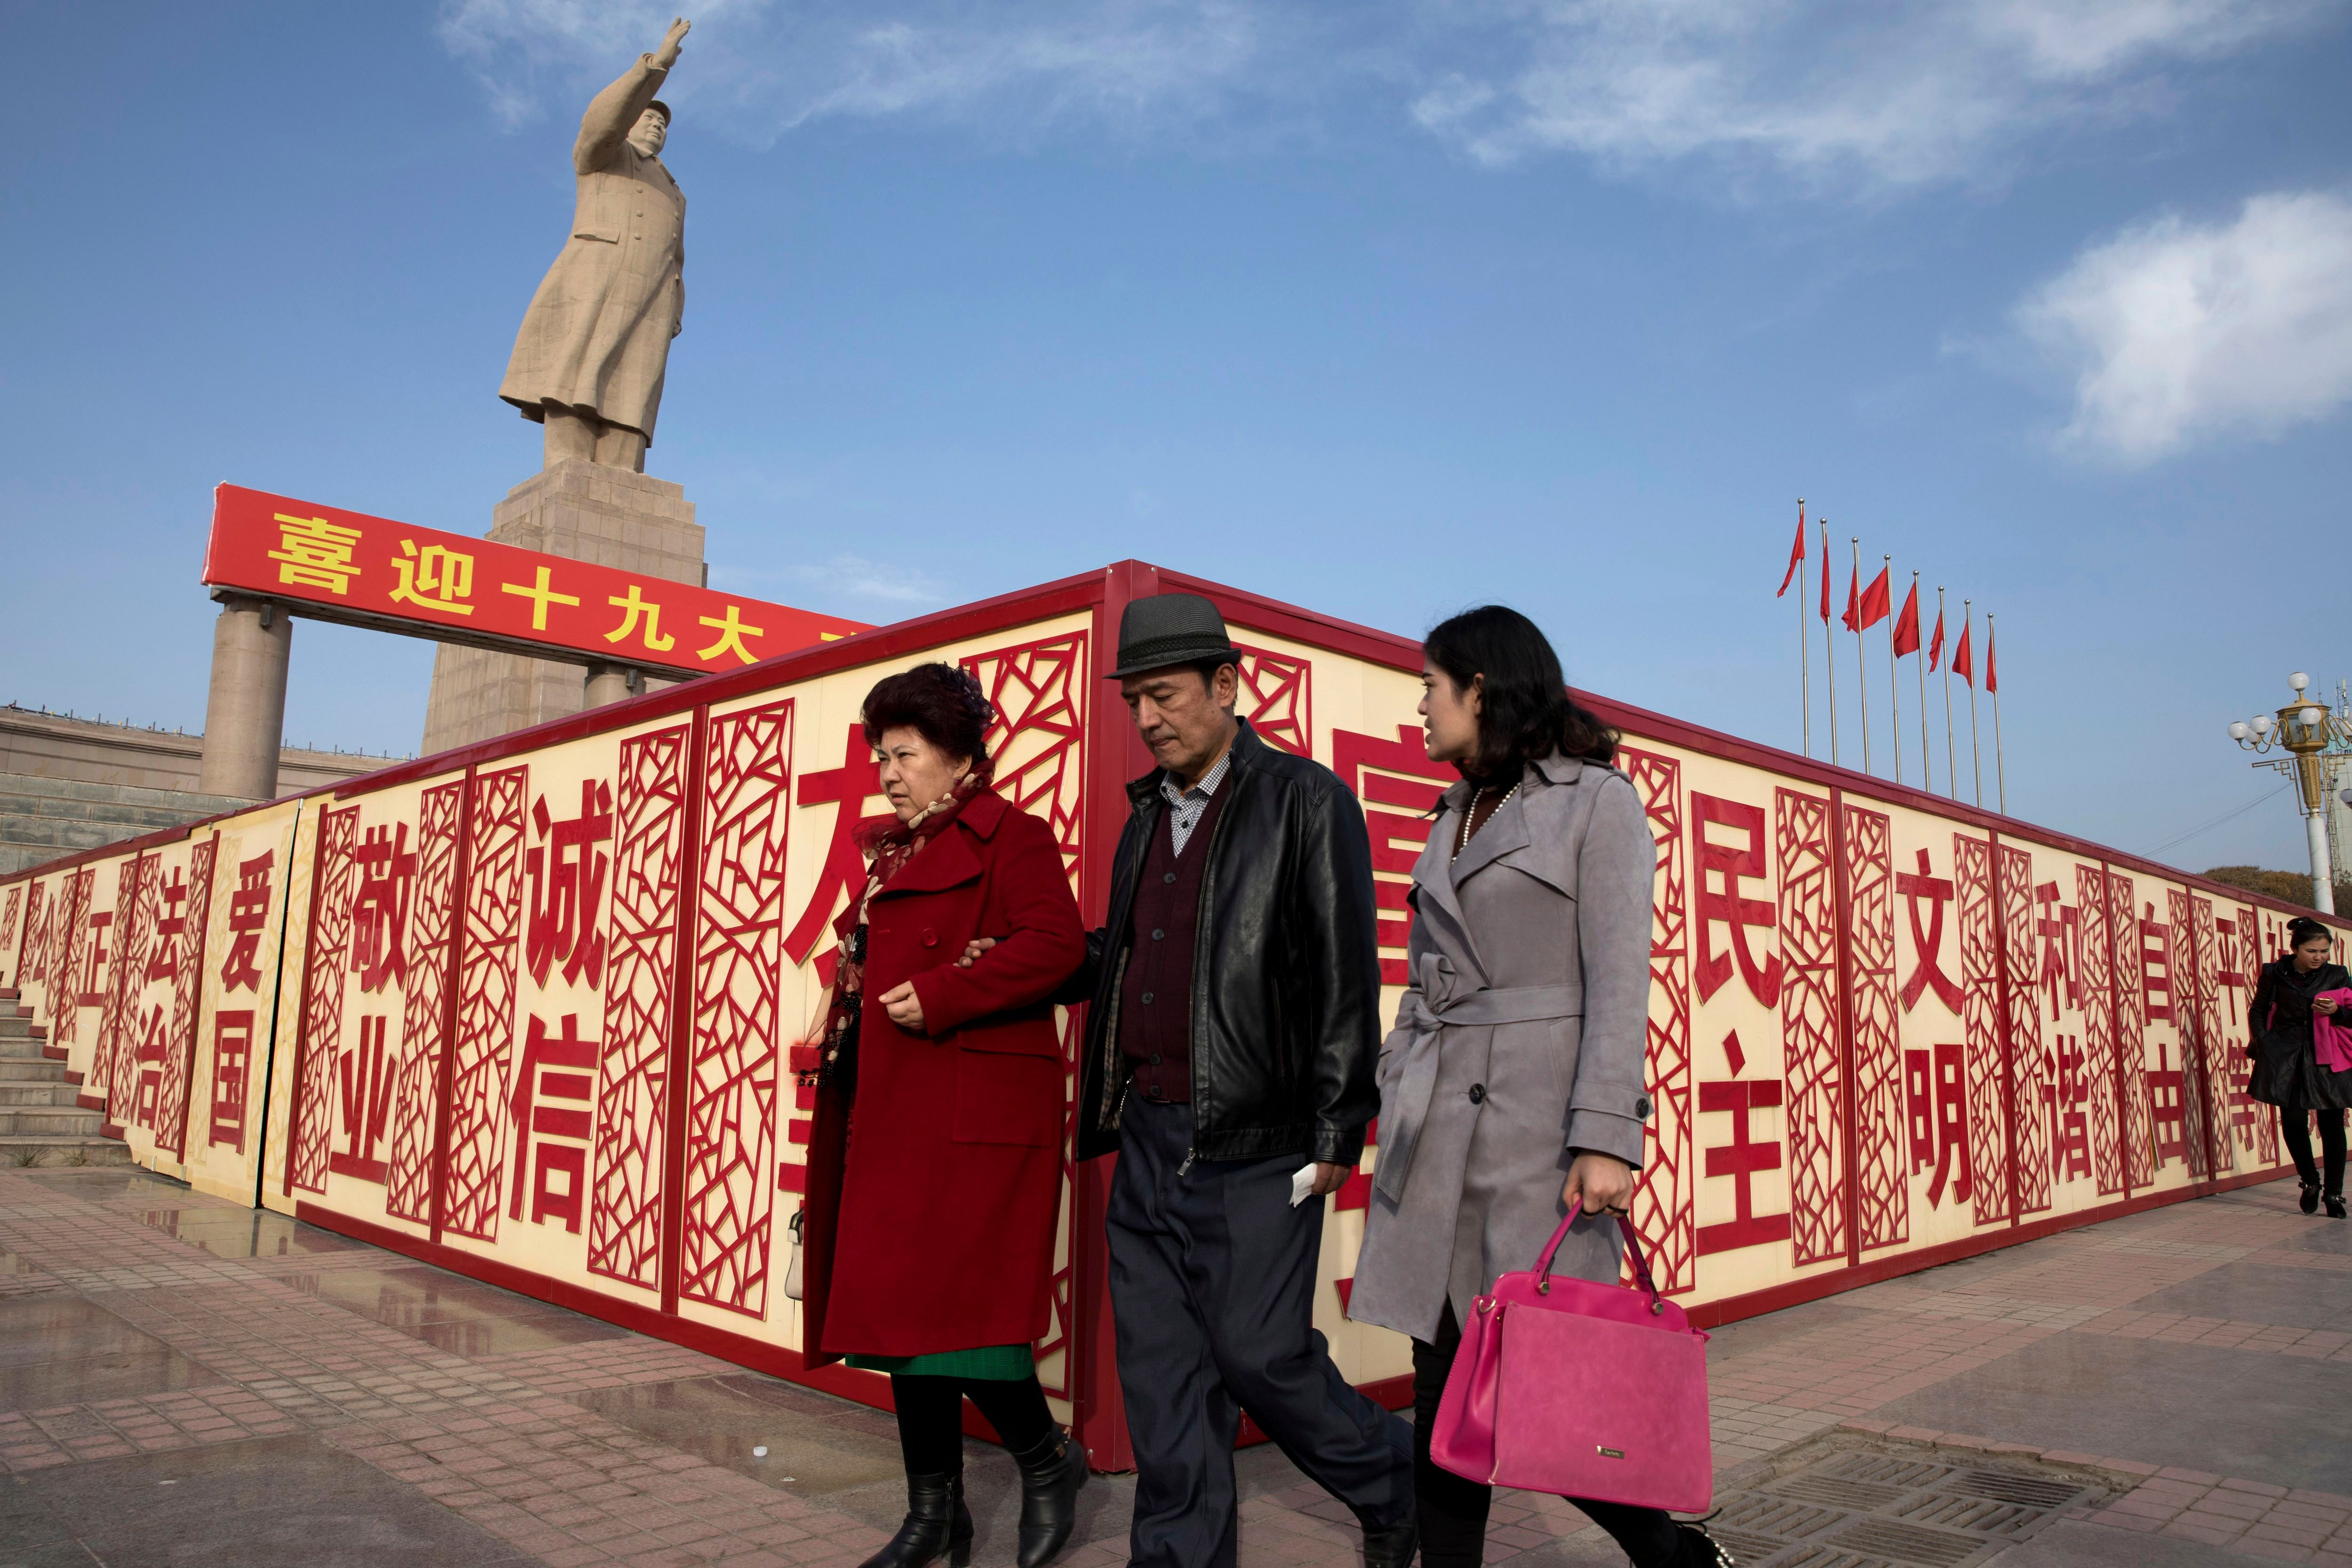 """Residents walk past a statue showing Mao Zedong near billboards with the words for """"Welcome 19th Congress,"""" """"Patriotism"""" and """"Democracy"""" near a square in Kashgar in western China's Xinjiang region. Authorities are using detentions in political indoctrination centers and data-driven surveillance to impose a digital police state in the region of Xinjiang and its Uighurs, a 10-million strong, Turkic-speaking Muslim minority Beijing fears could be influenced by extremismDigital Police State, Kashgar, China - 04 Nov 2017"""